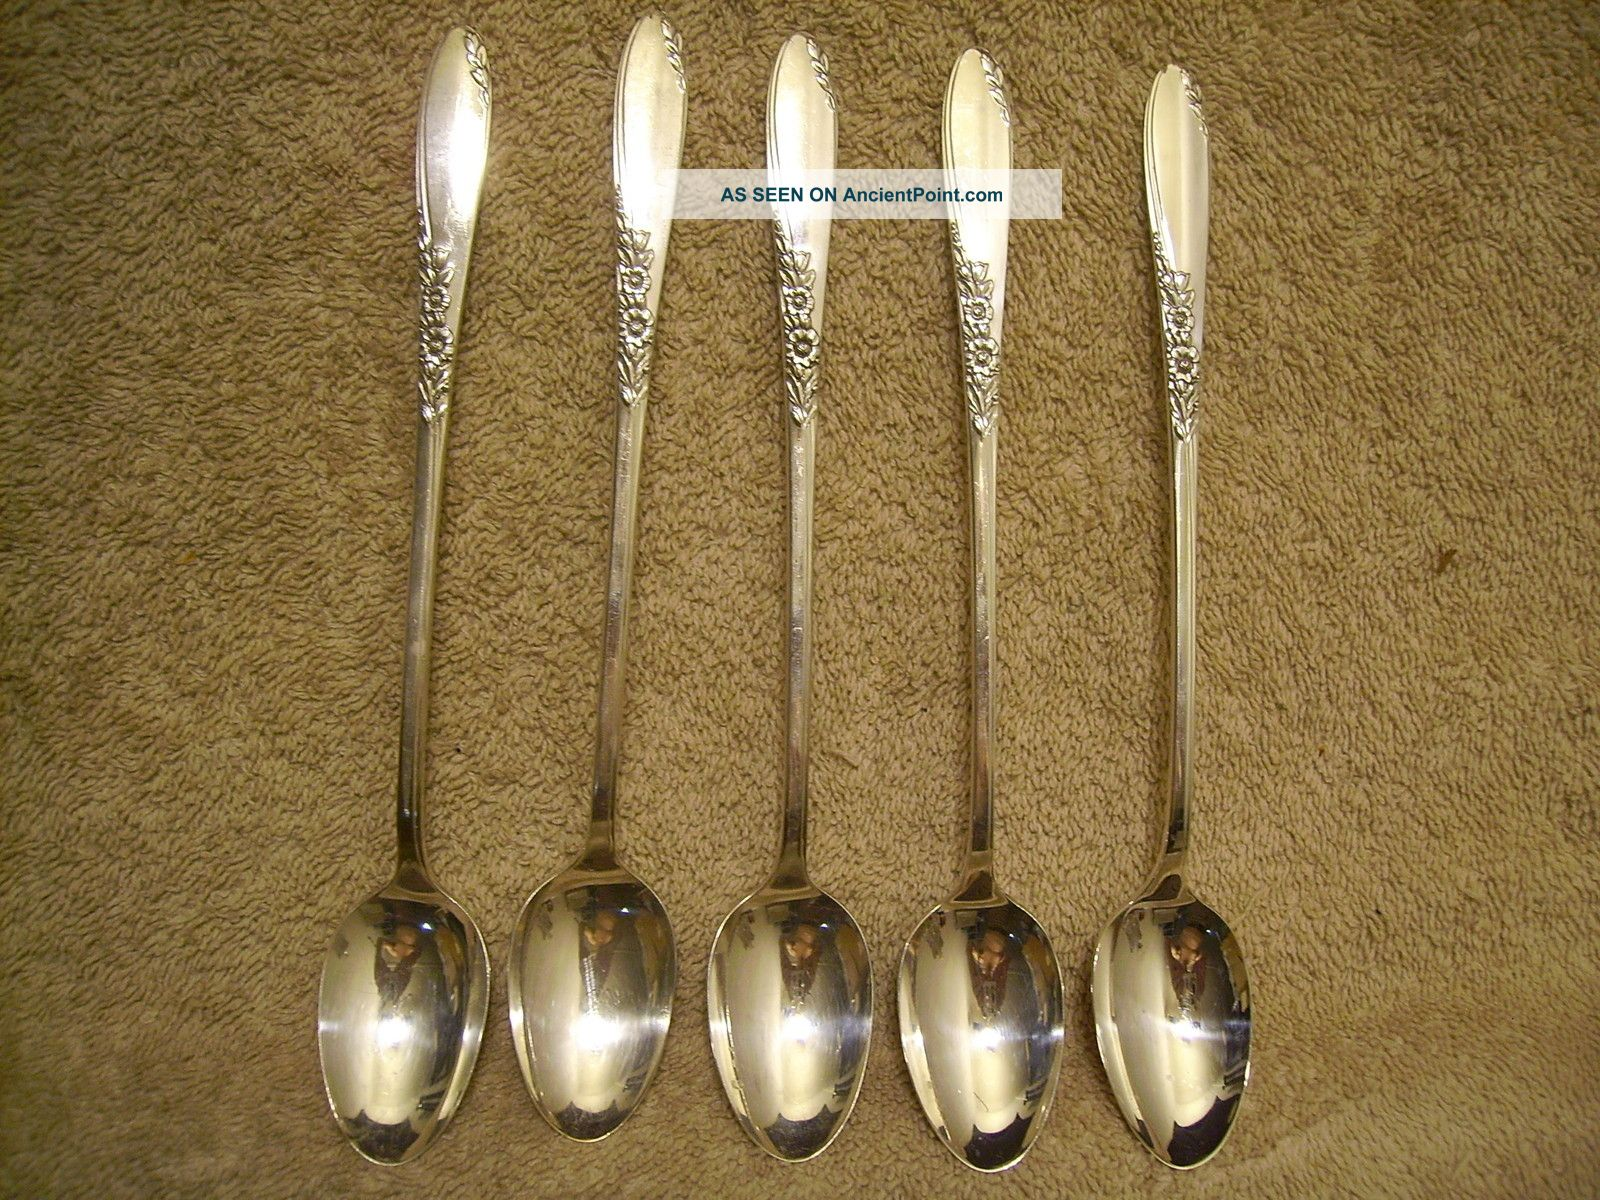 5 Rogers 1954 Country Lane Iced Tea Spoons Oneida Ltd Silverplate Oneida/Wm. A. Rogers photo